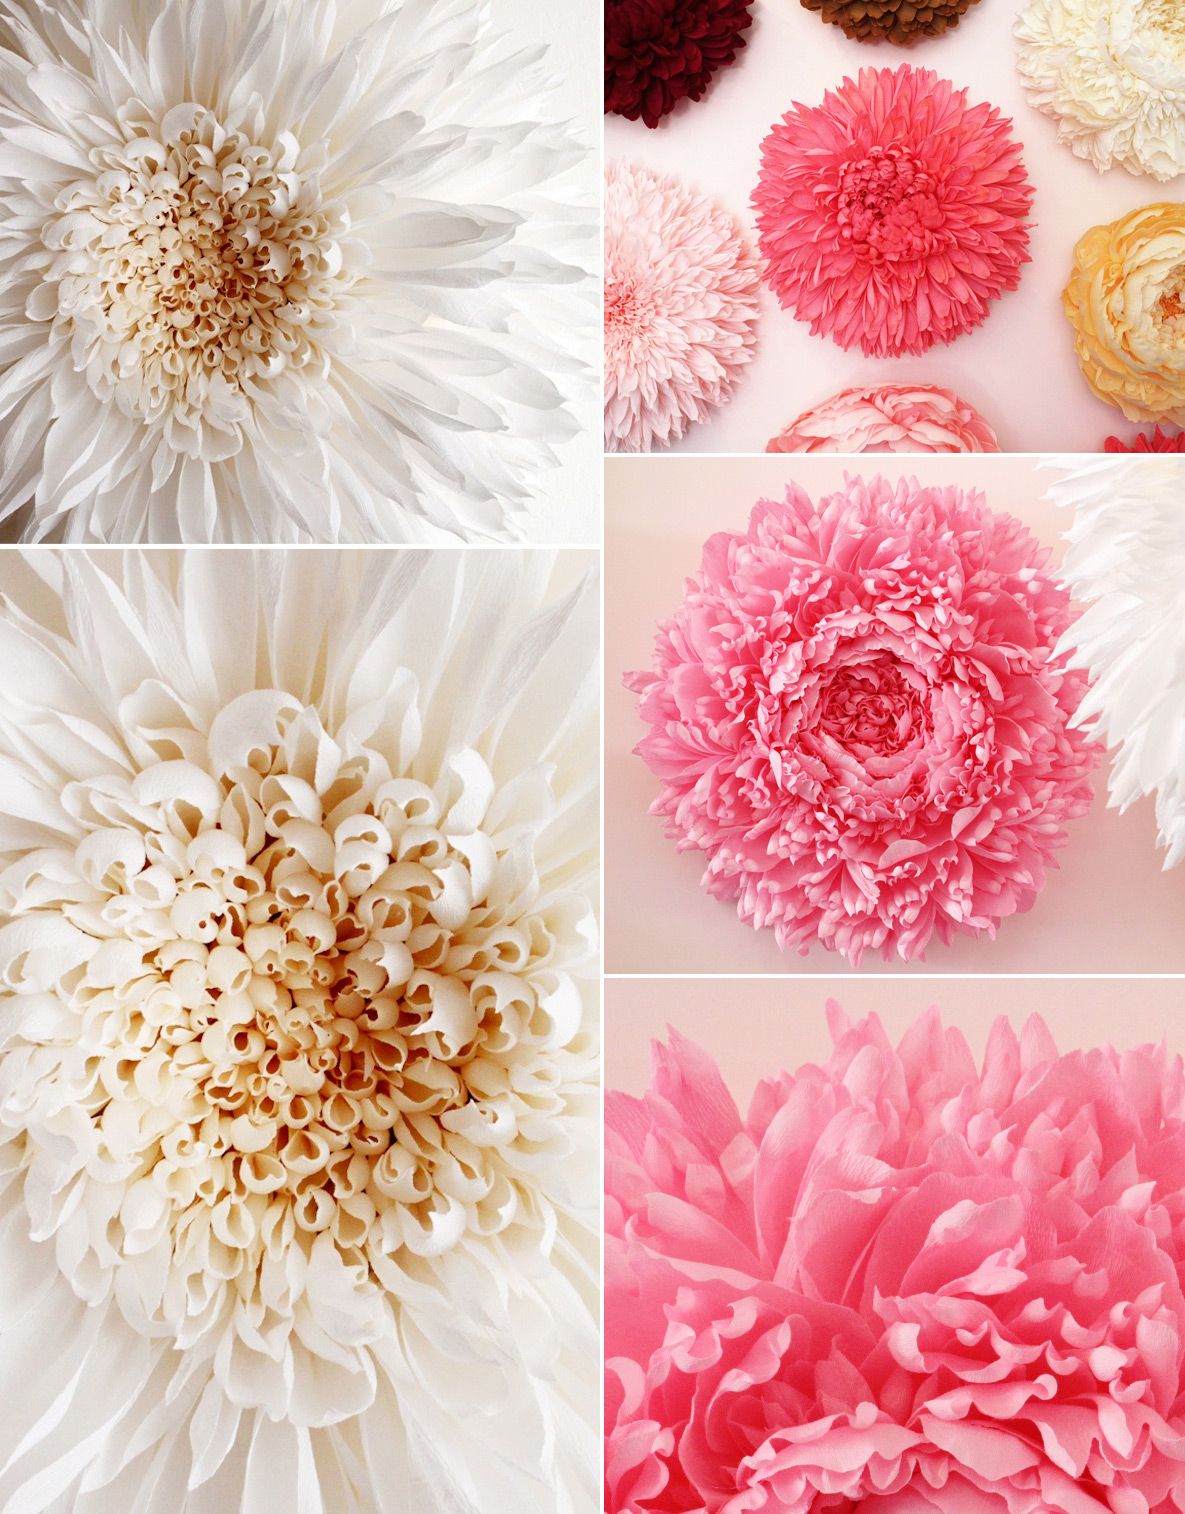 GIANT PAPER FLOWERS | &inspire